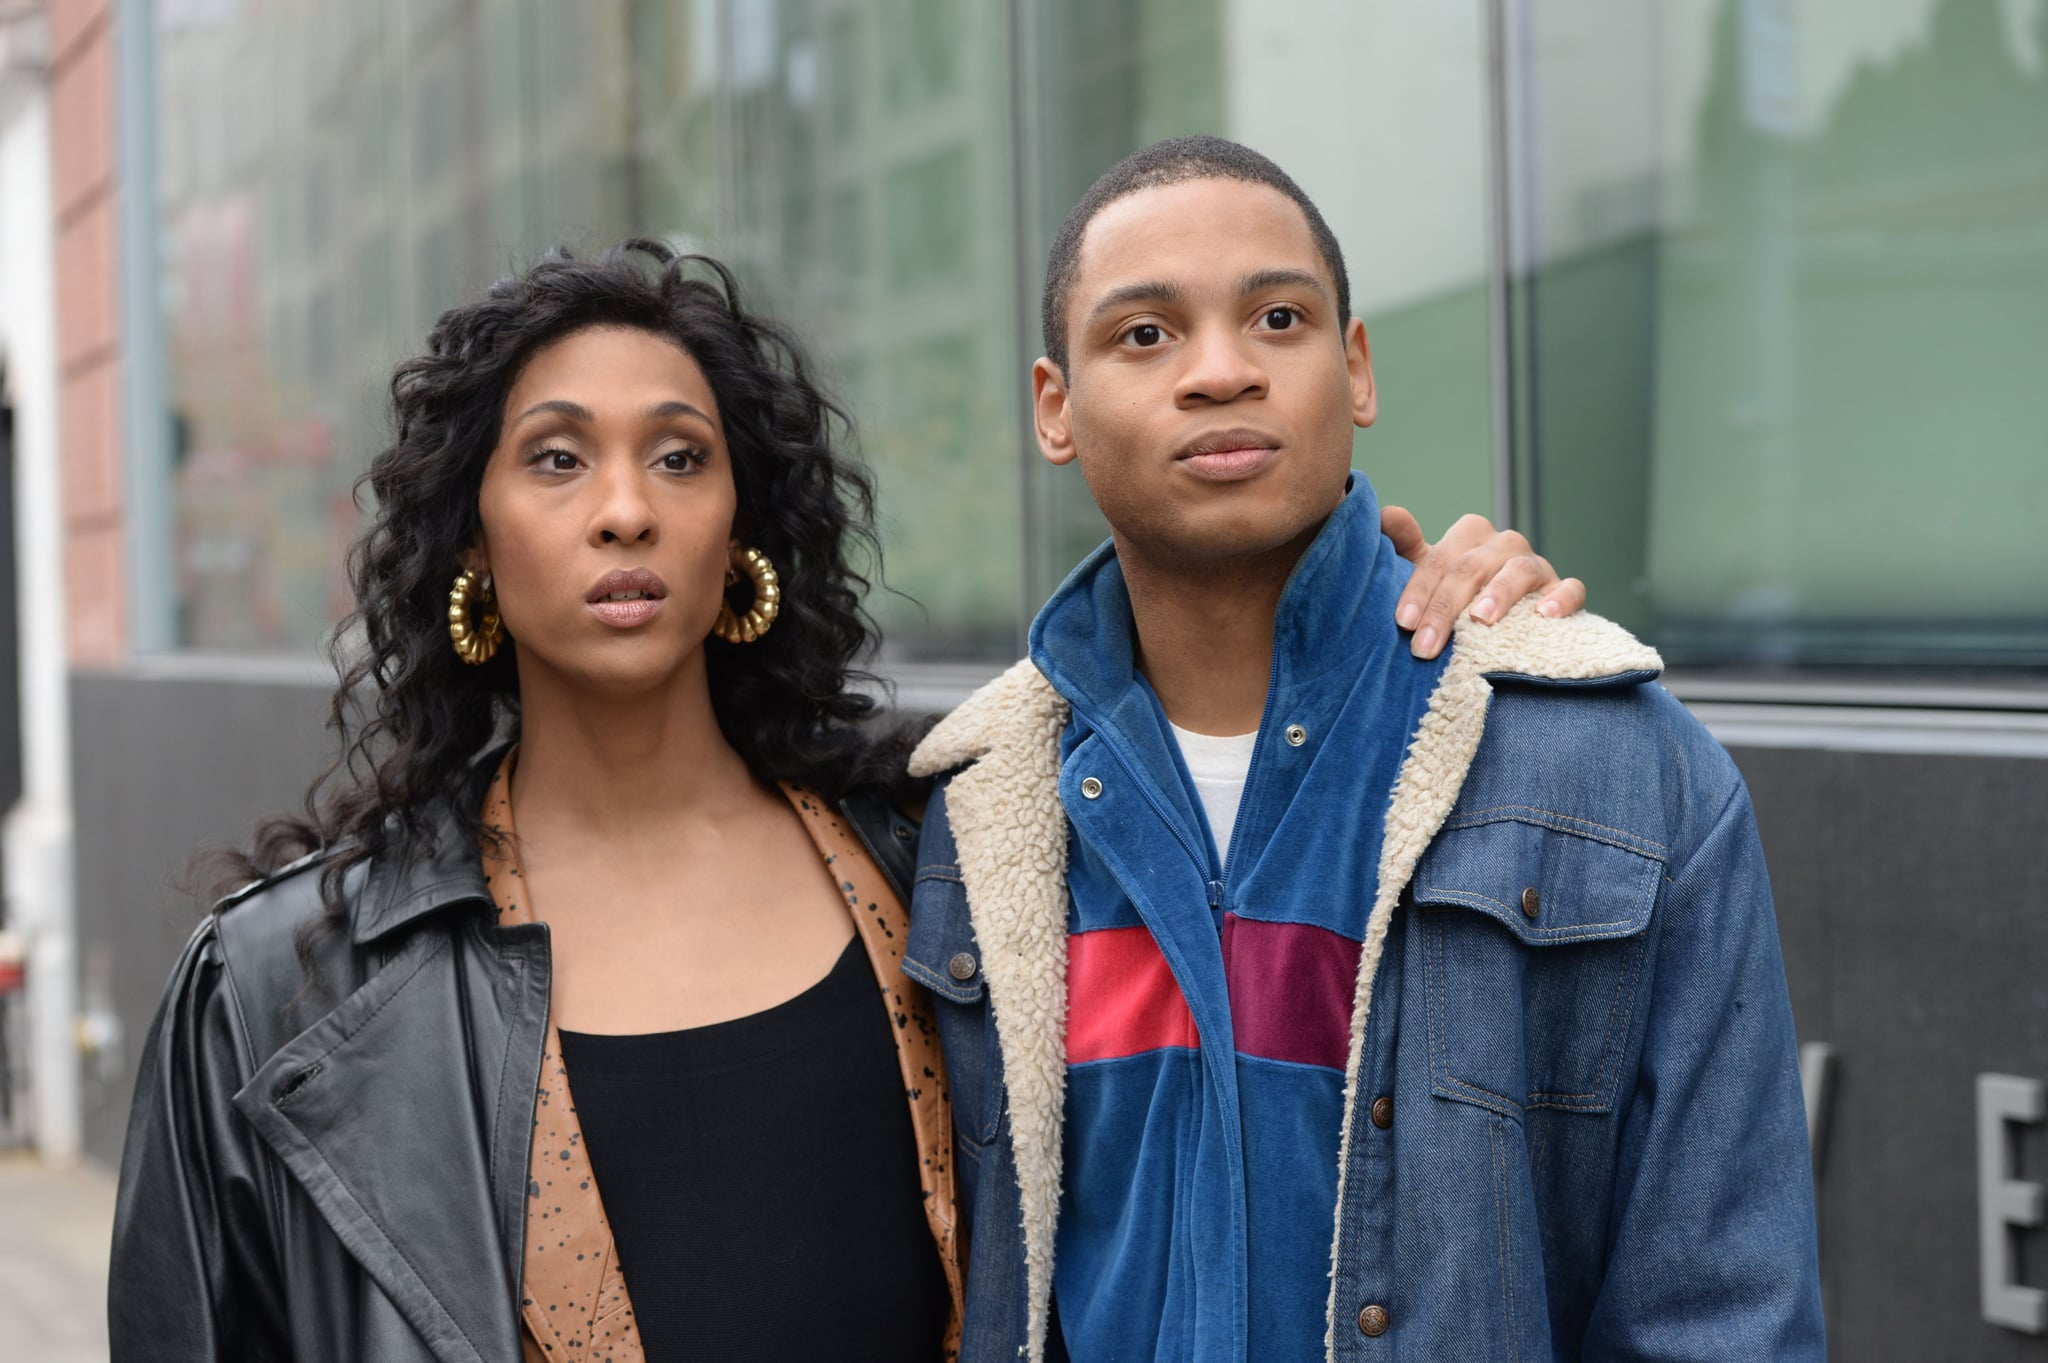 POSE, from left: MJ Rodriguez, Ryan Jamaal Swain, 'Pilot', (Season 1, ep. 101, airs June 3, 2018). photo: JoJo Whilden / FX / Courtesy: Everett Collection